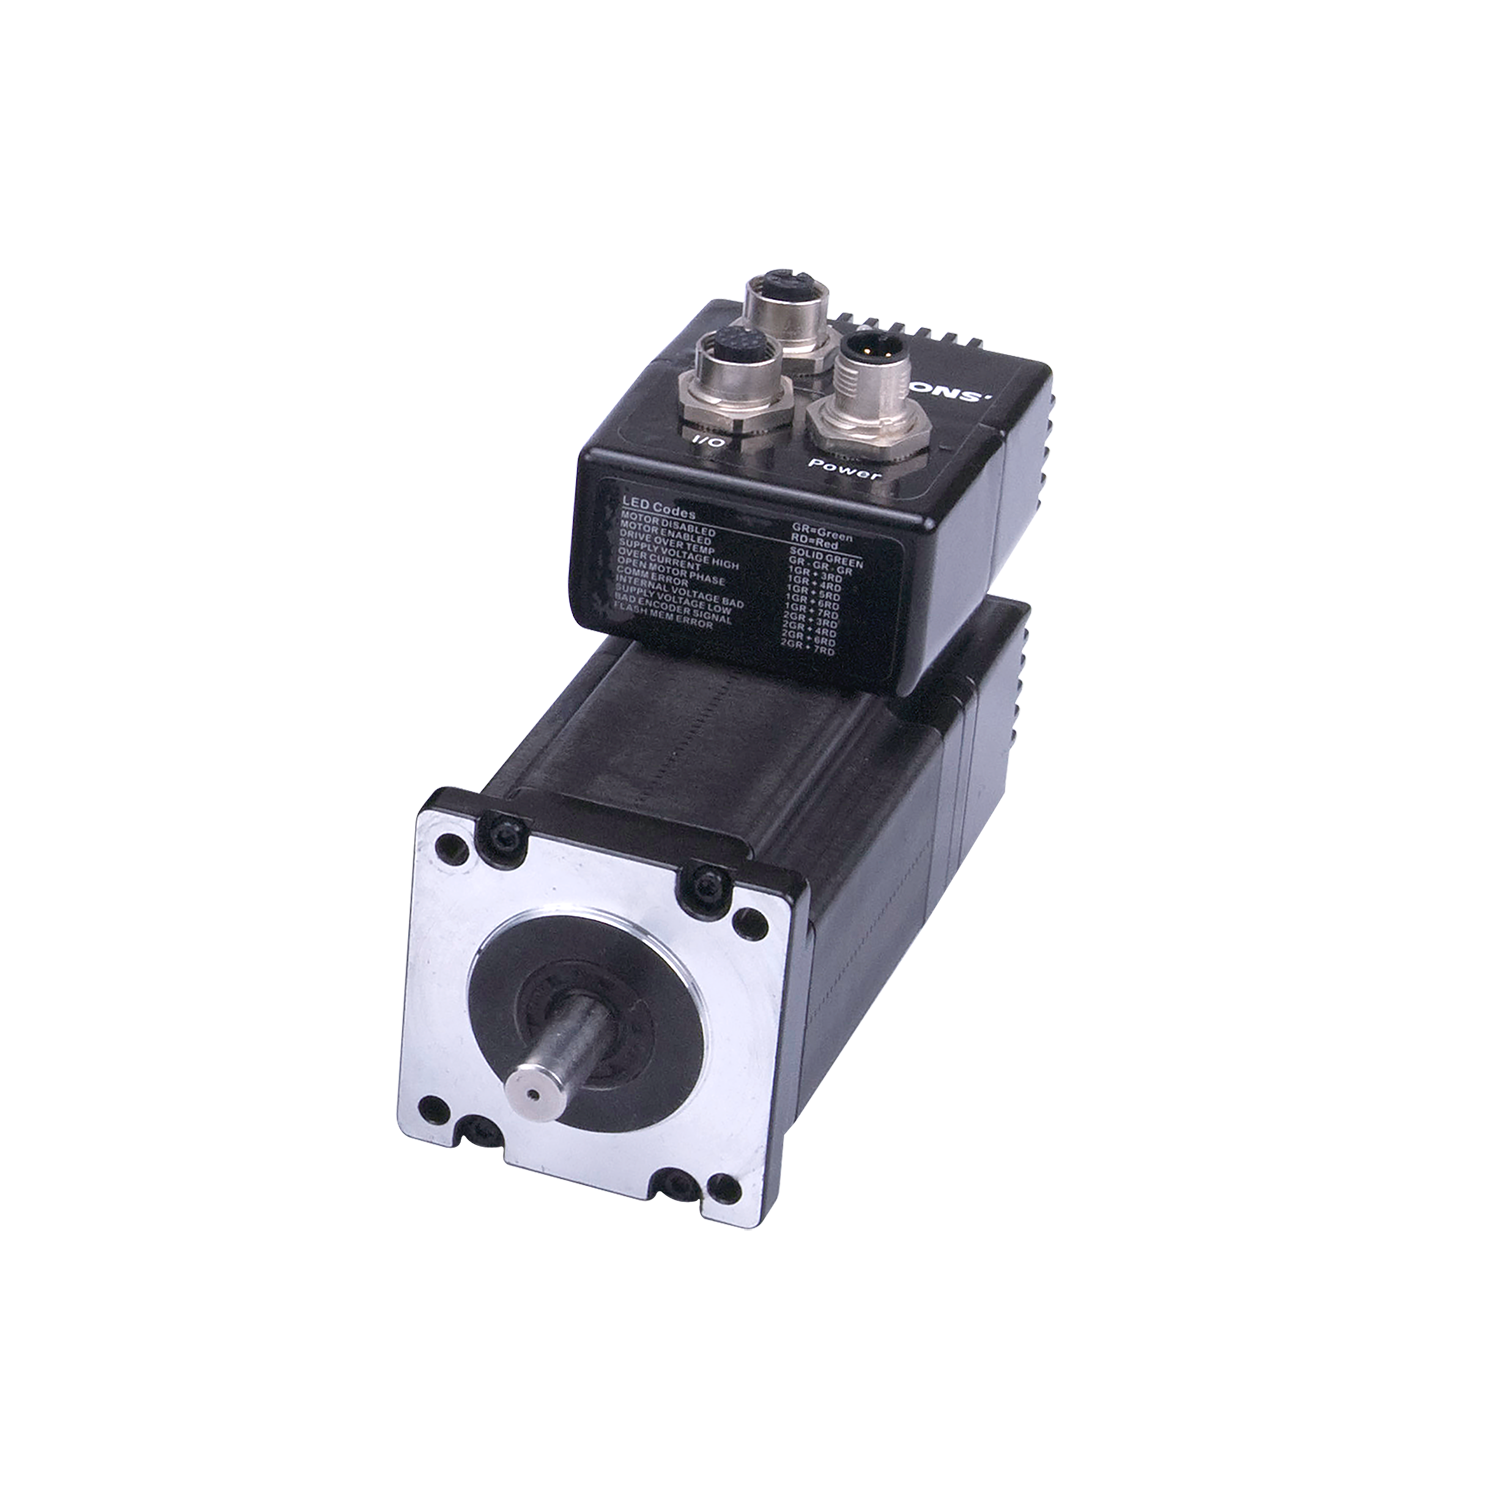 Integrated step-servo motor IP65